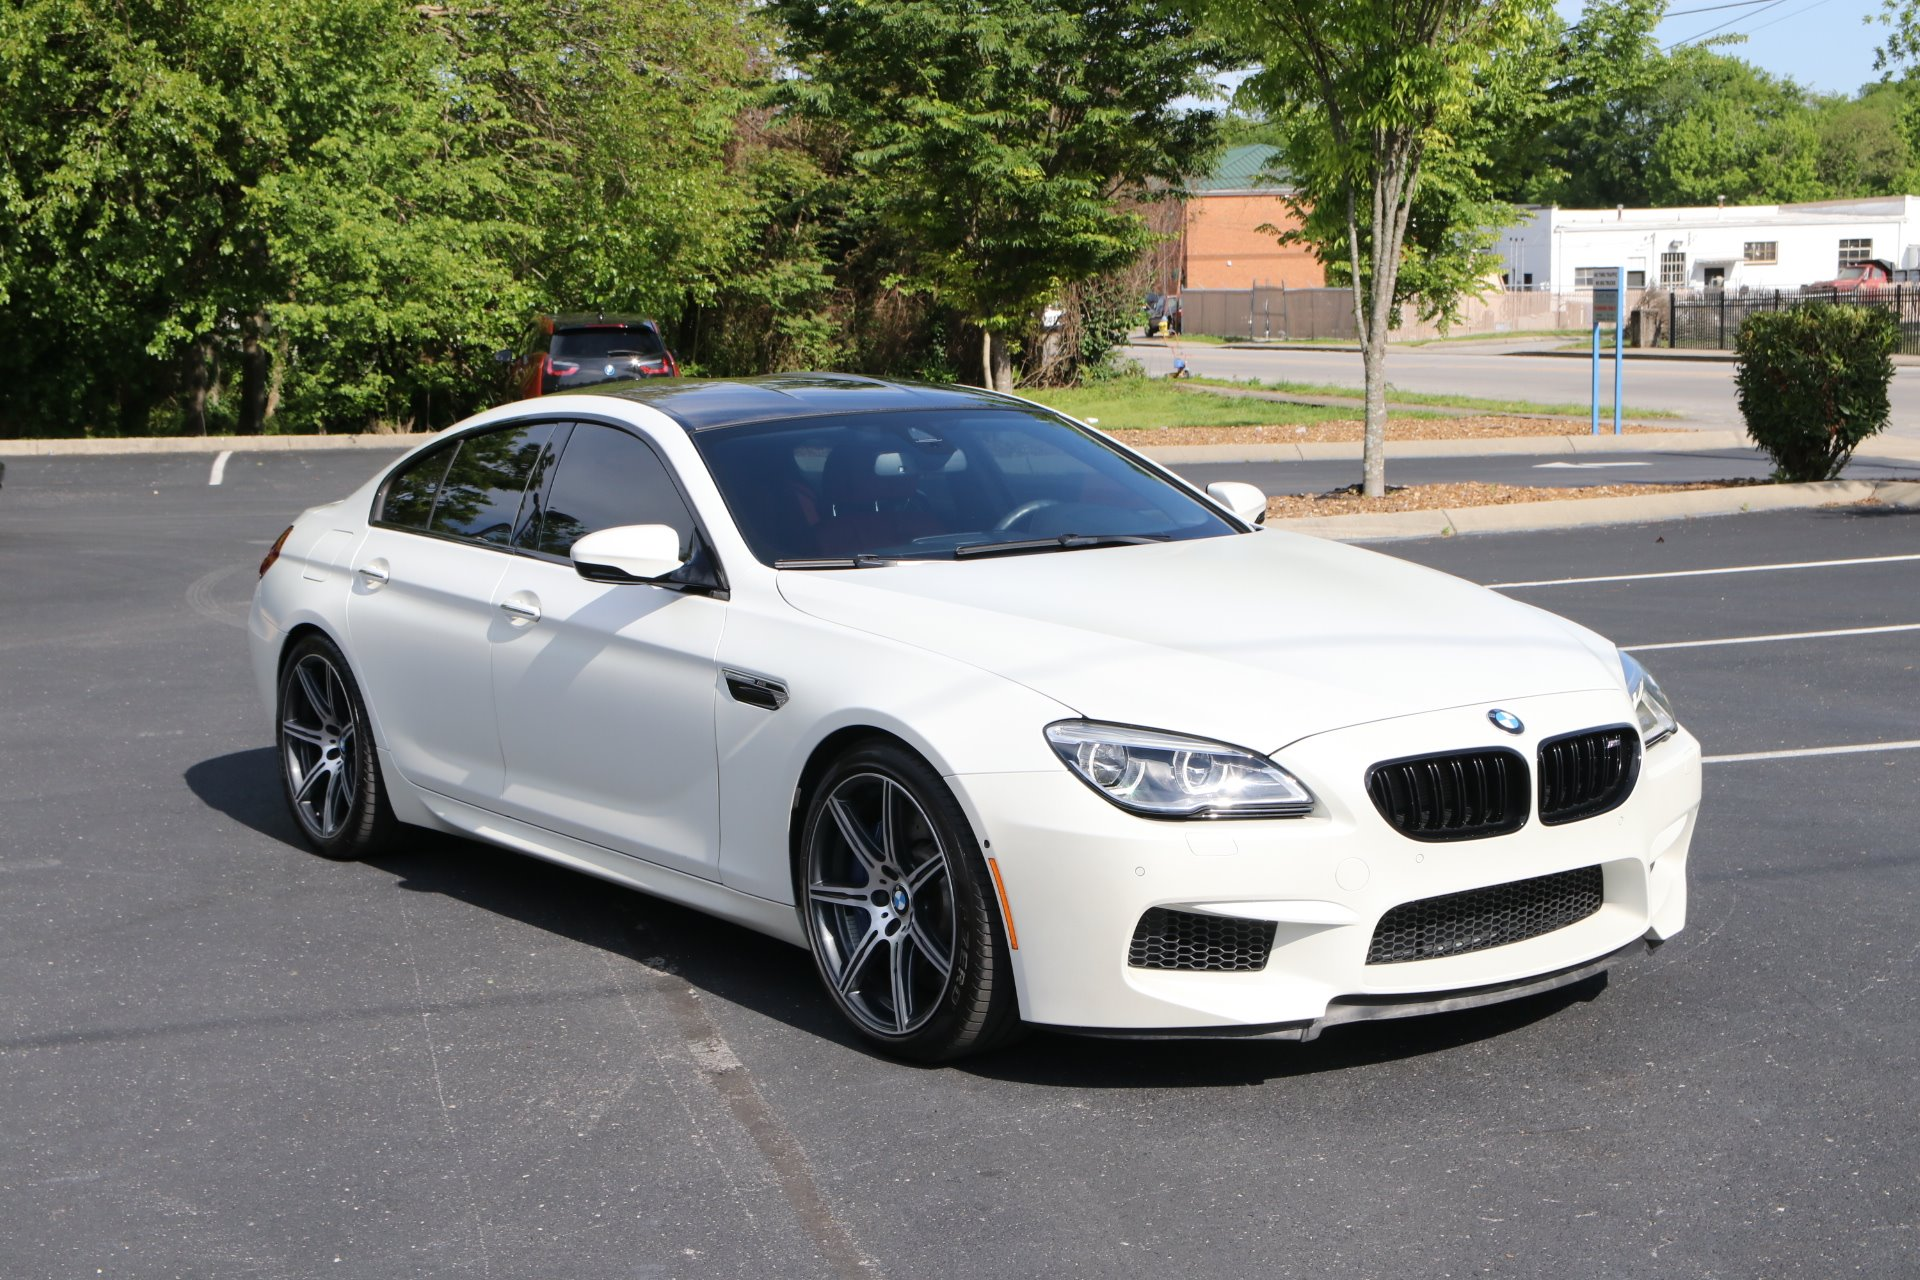 Used 2018 BMW M6 GRAND COUPE COMPETITION PKG W/NAV Gran Coupe for sale Sold at Auto Collection in Murfreesboro TN 37130 1